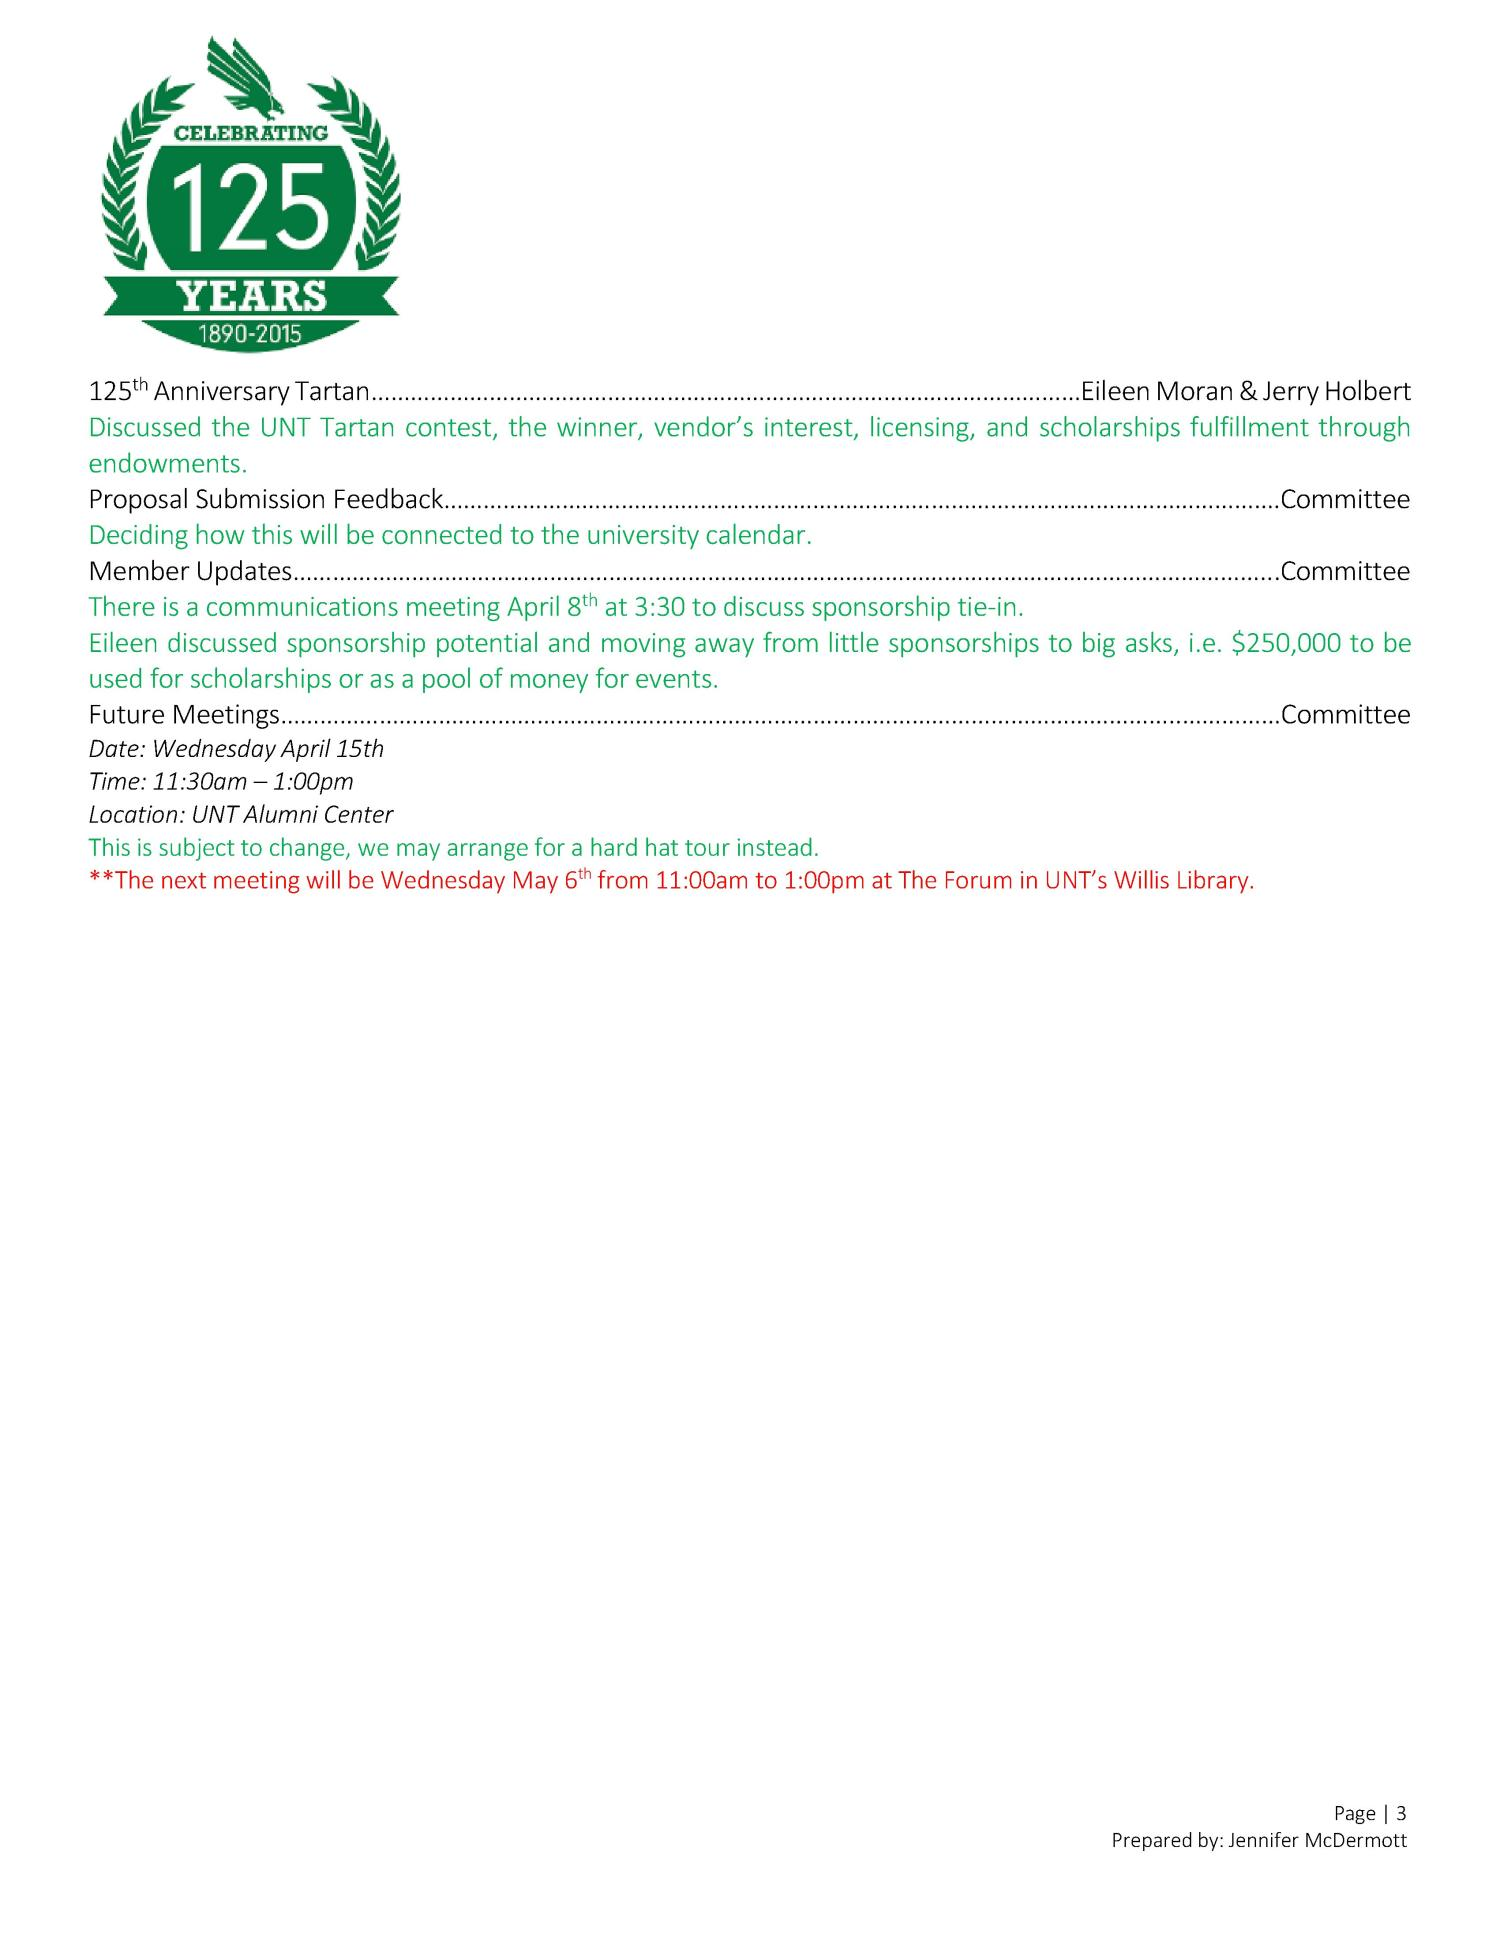 UNT 125th Anniversary Steering Committee Third Meeting                                                                                                      [Sequence #]: 3 of 3